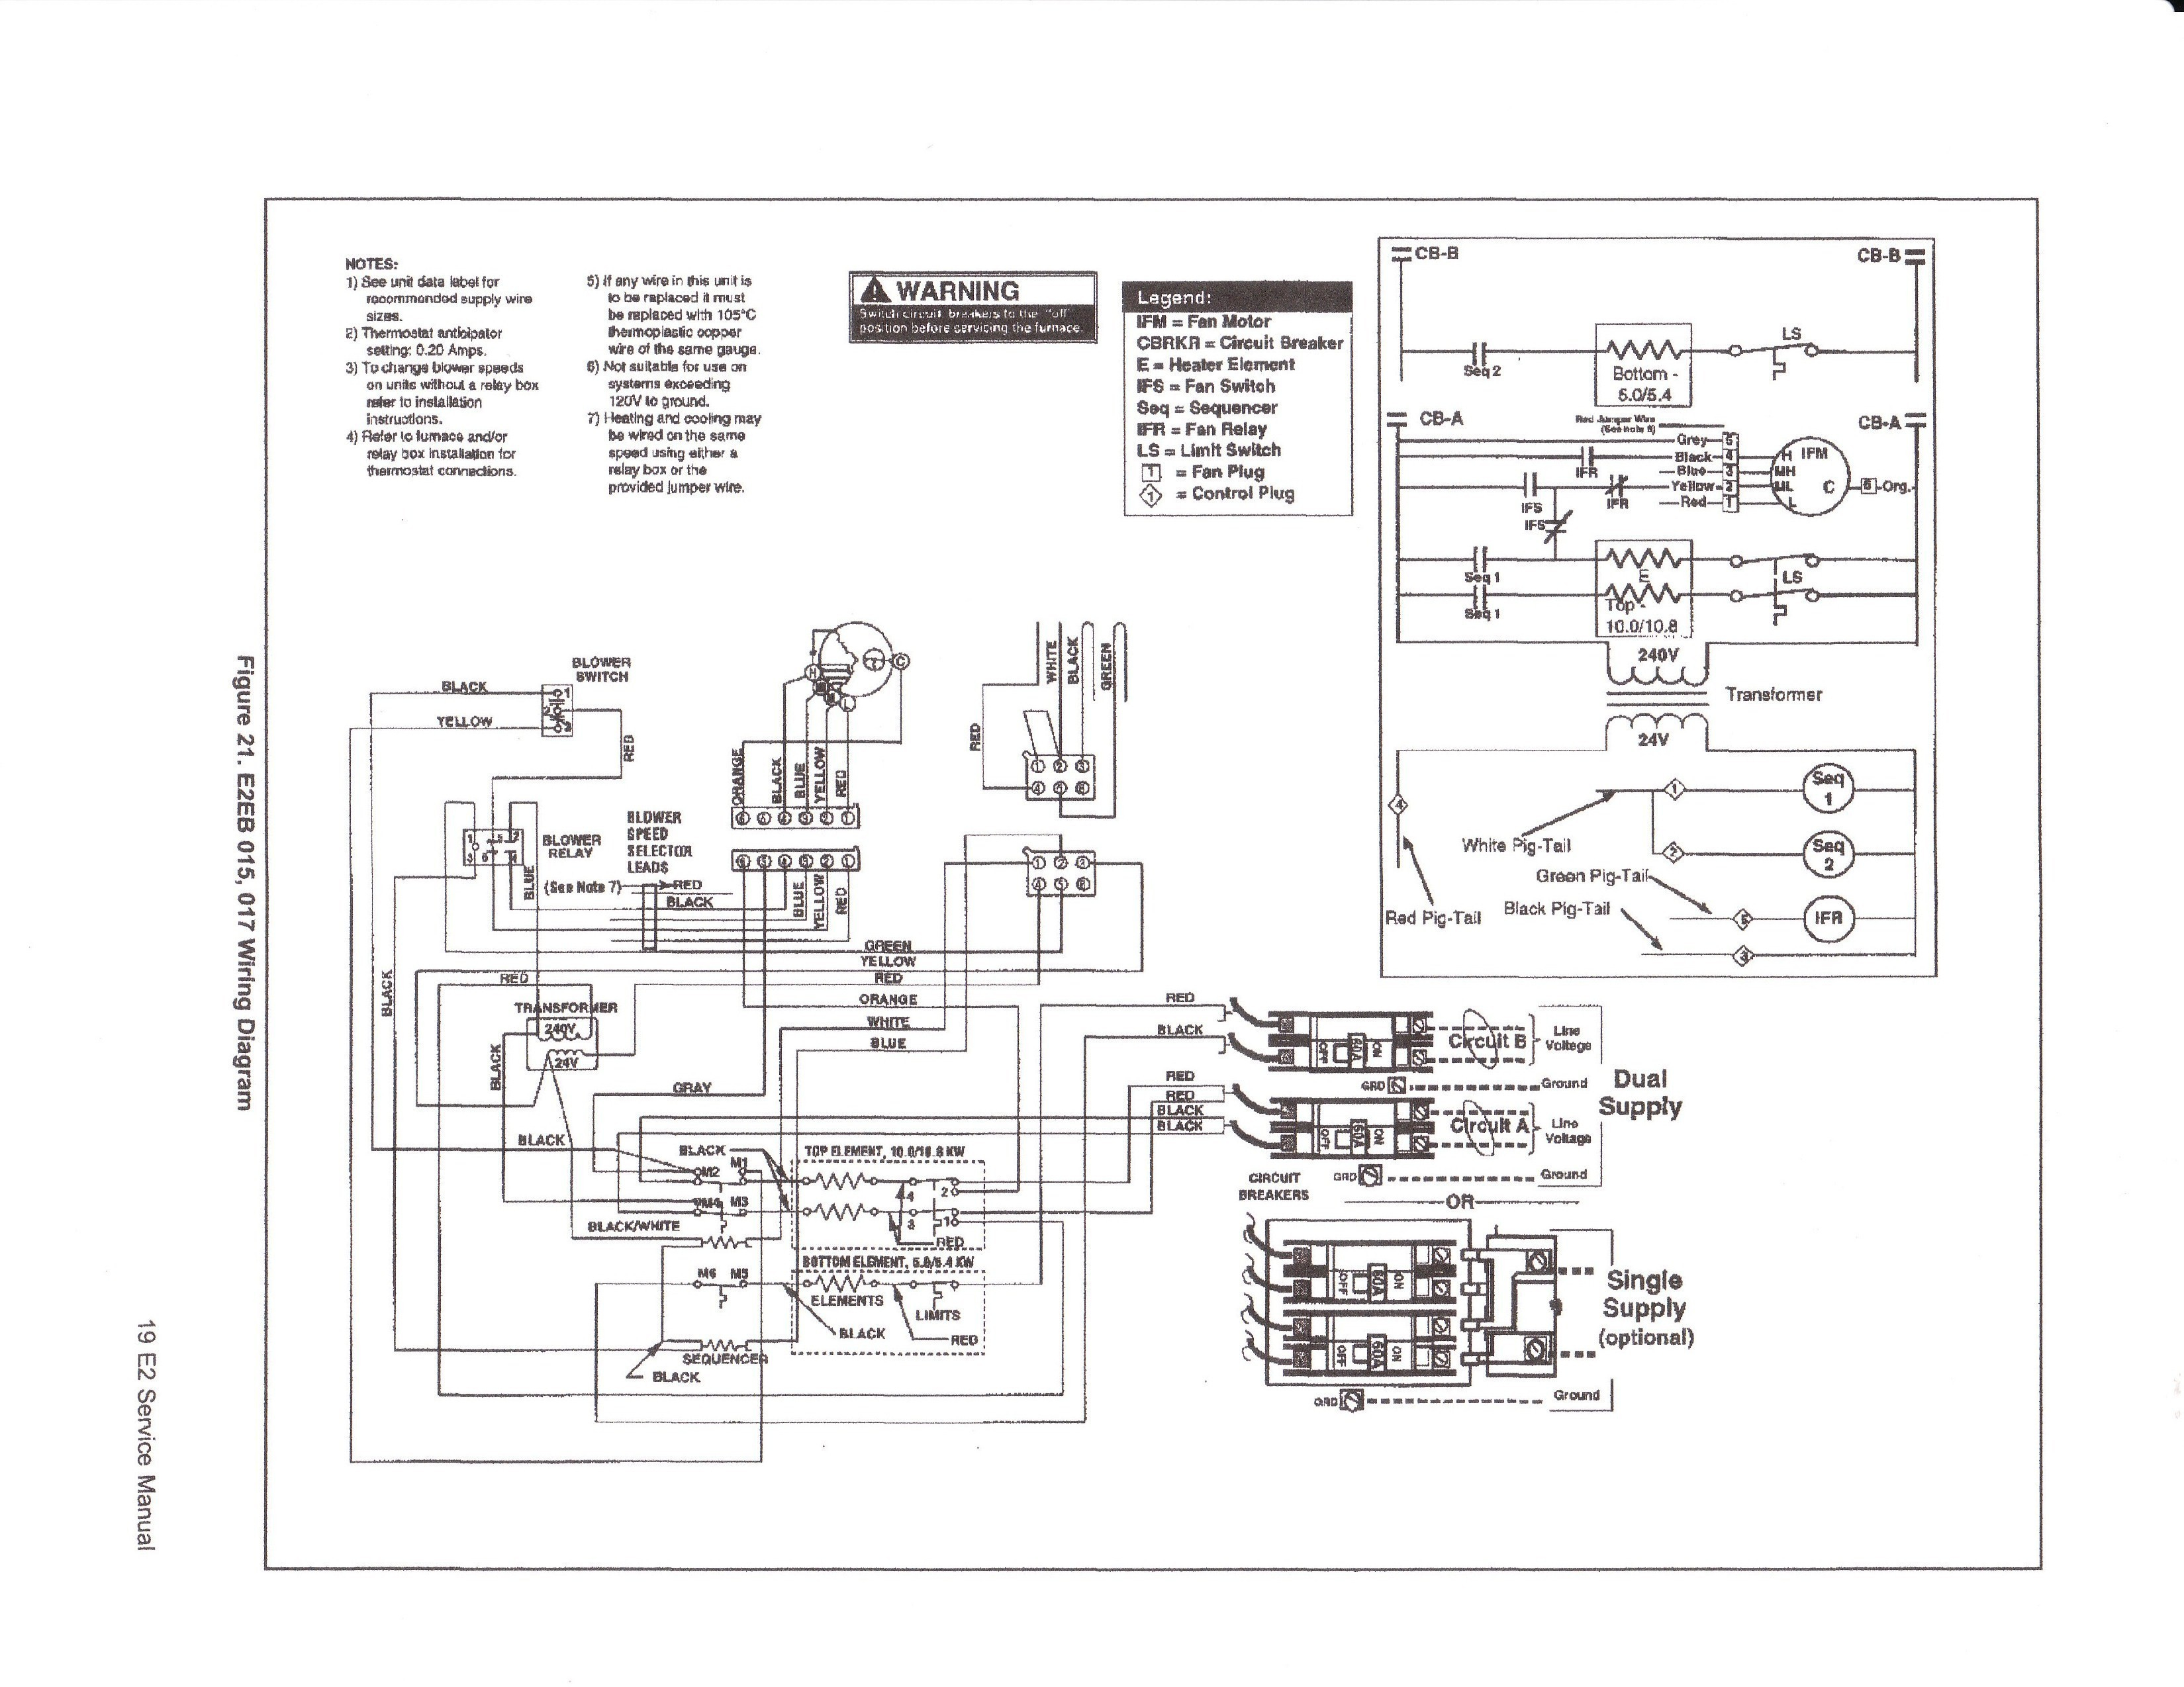 nordyne ac wiring diagram Collection-Gibson Hvac Wiring Diagram Refrence nordyne Wiring Diagram Electric Furnace Fresh Wiring Diagram for 19-k